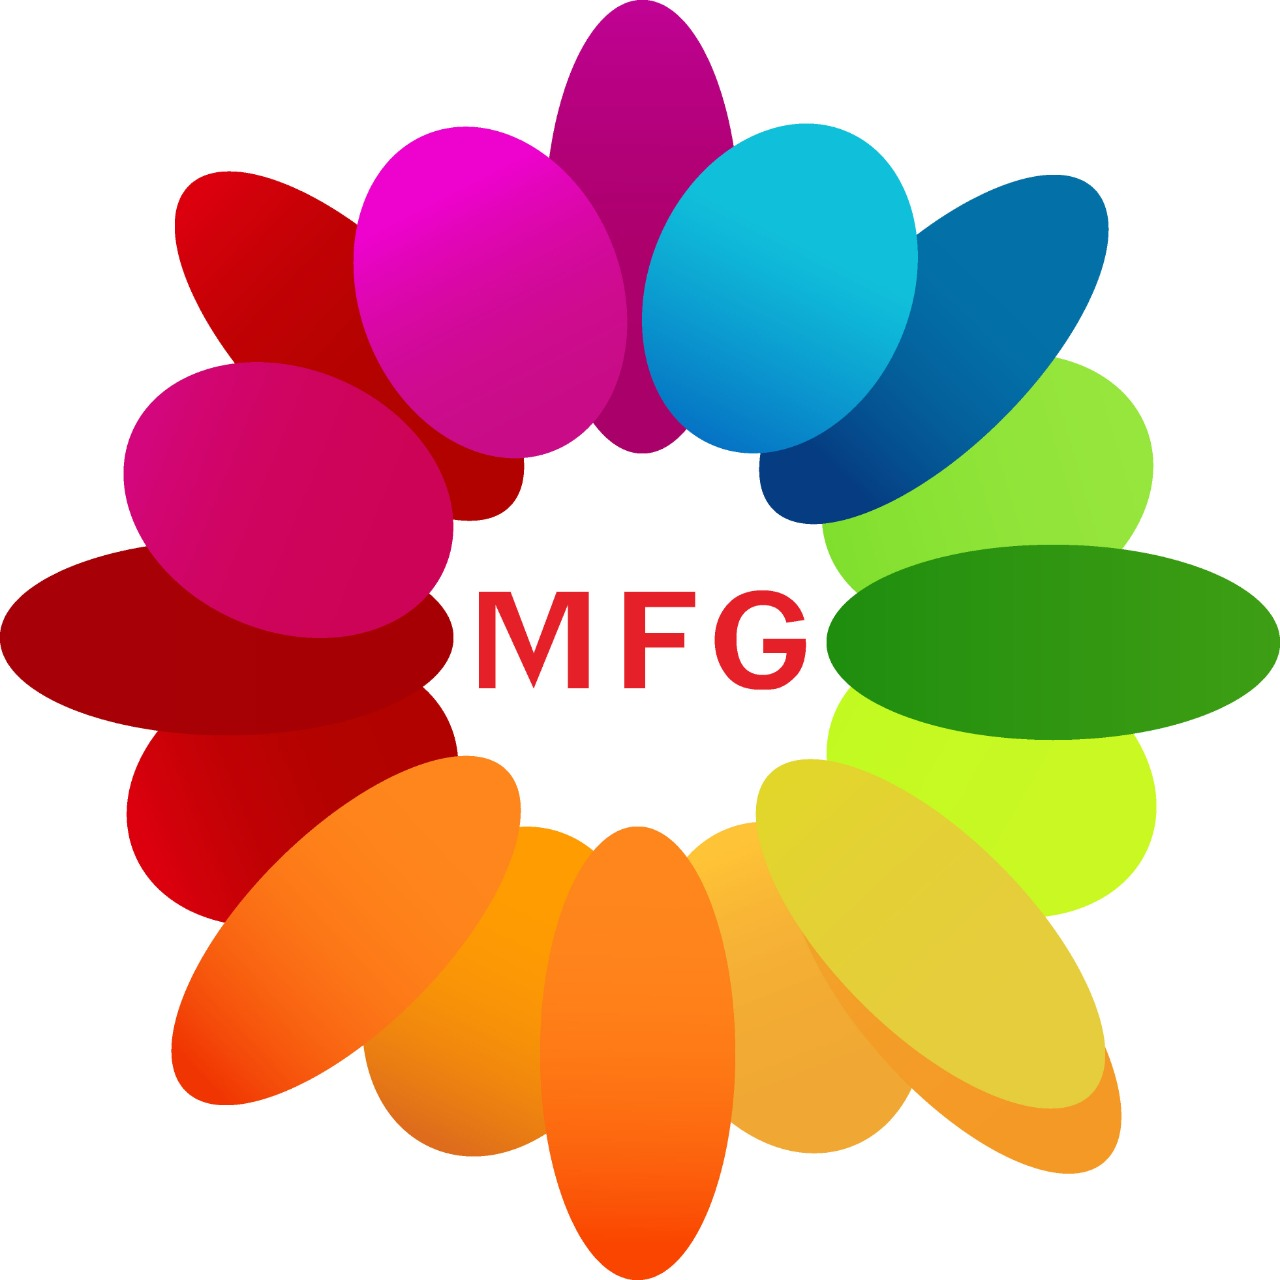 Box of half kg Dryfruits laddoo with basket of Assorted chocolates with a diwali greeting card